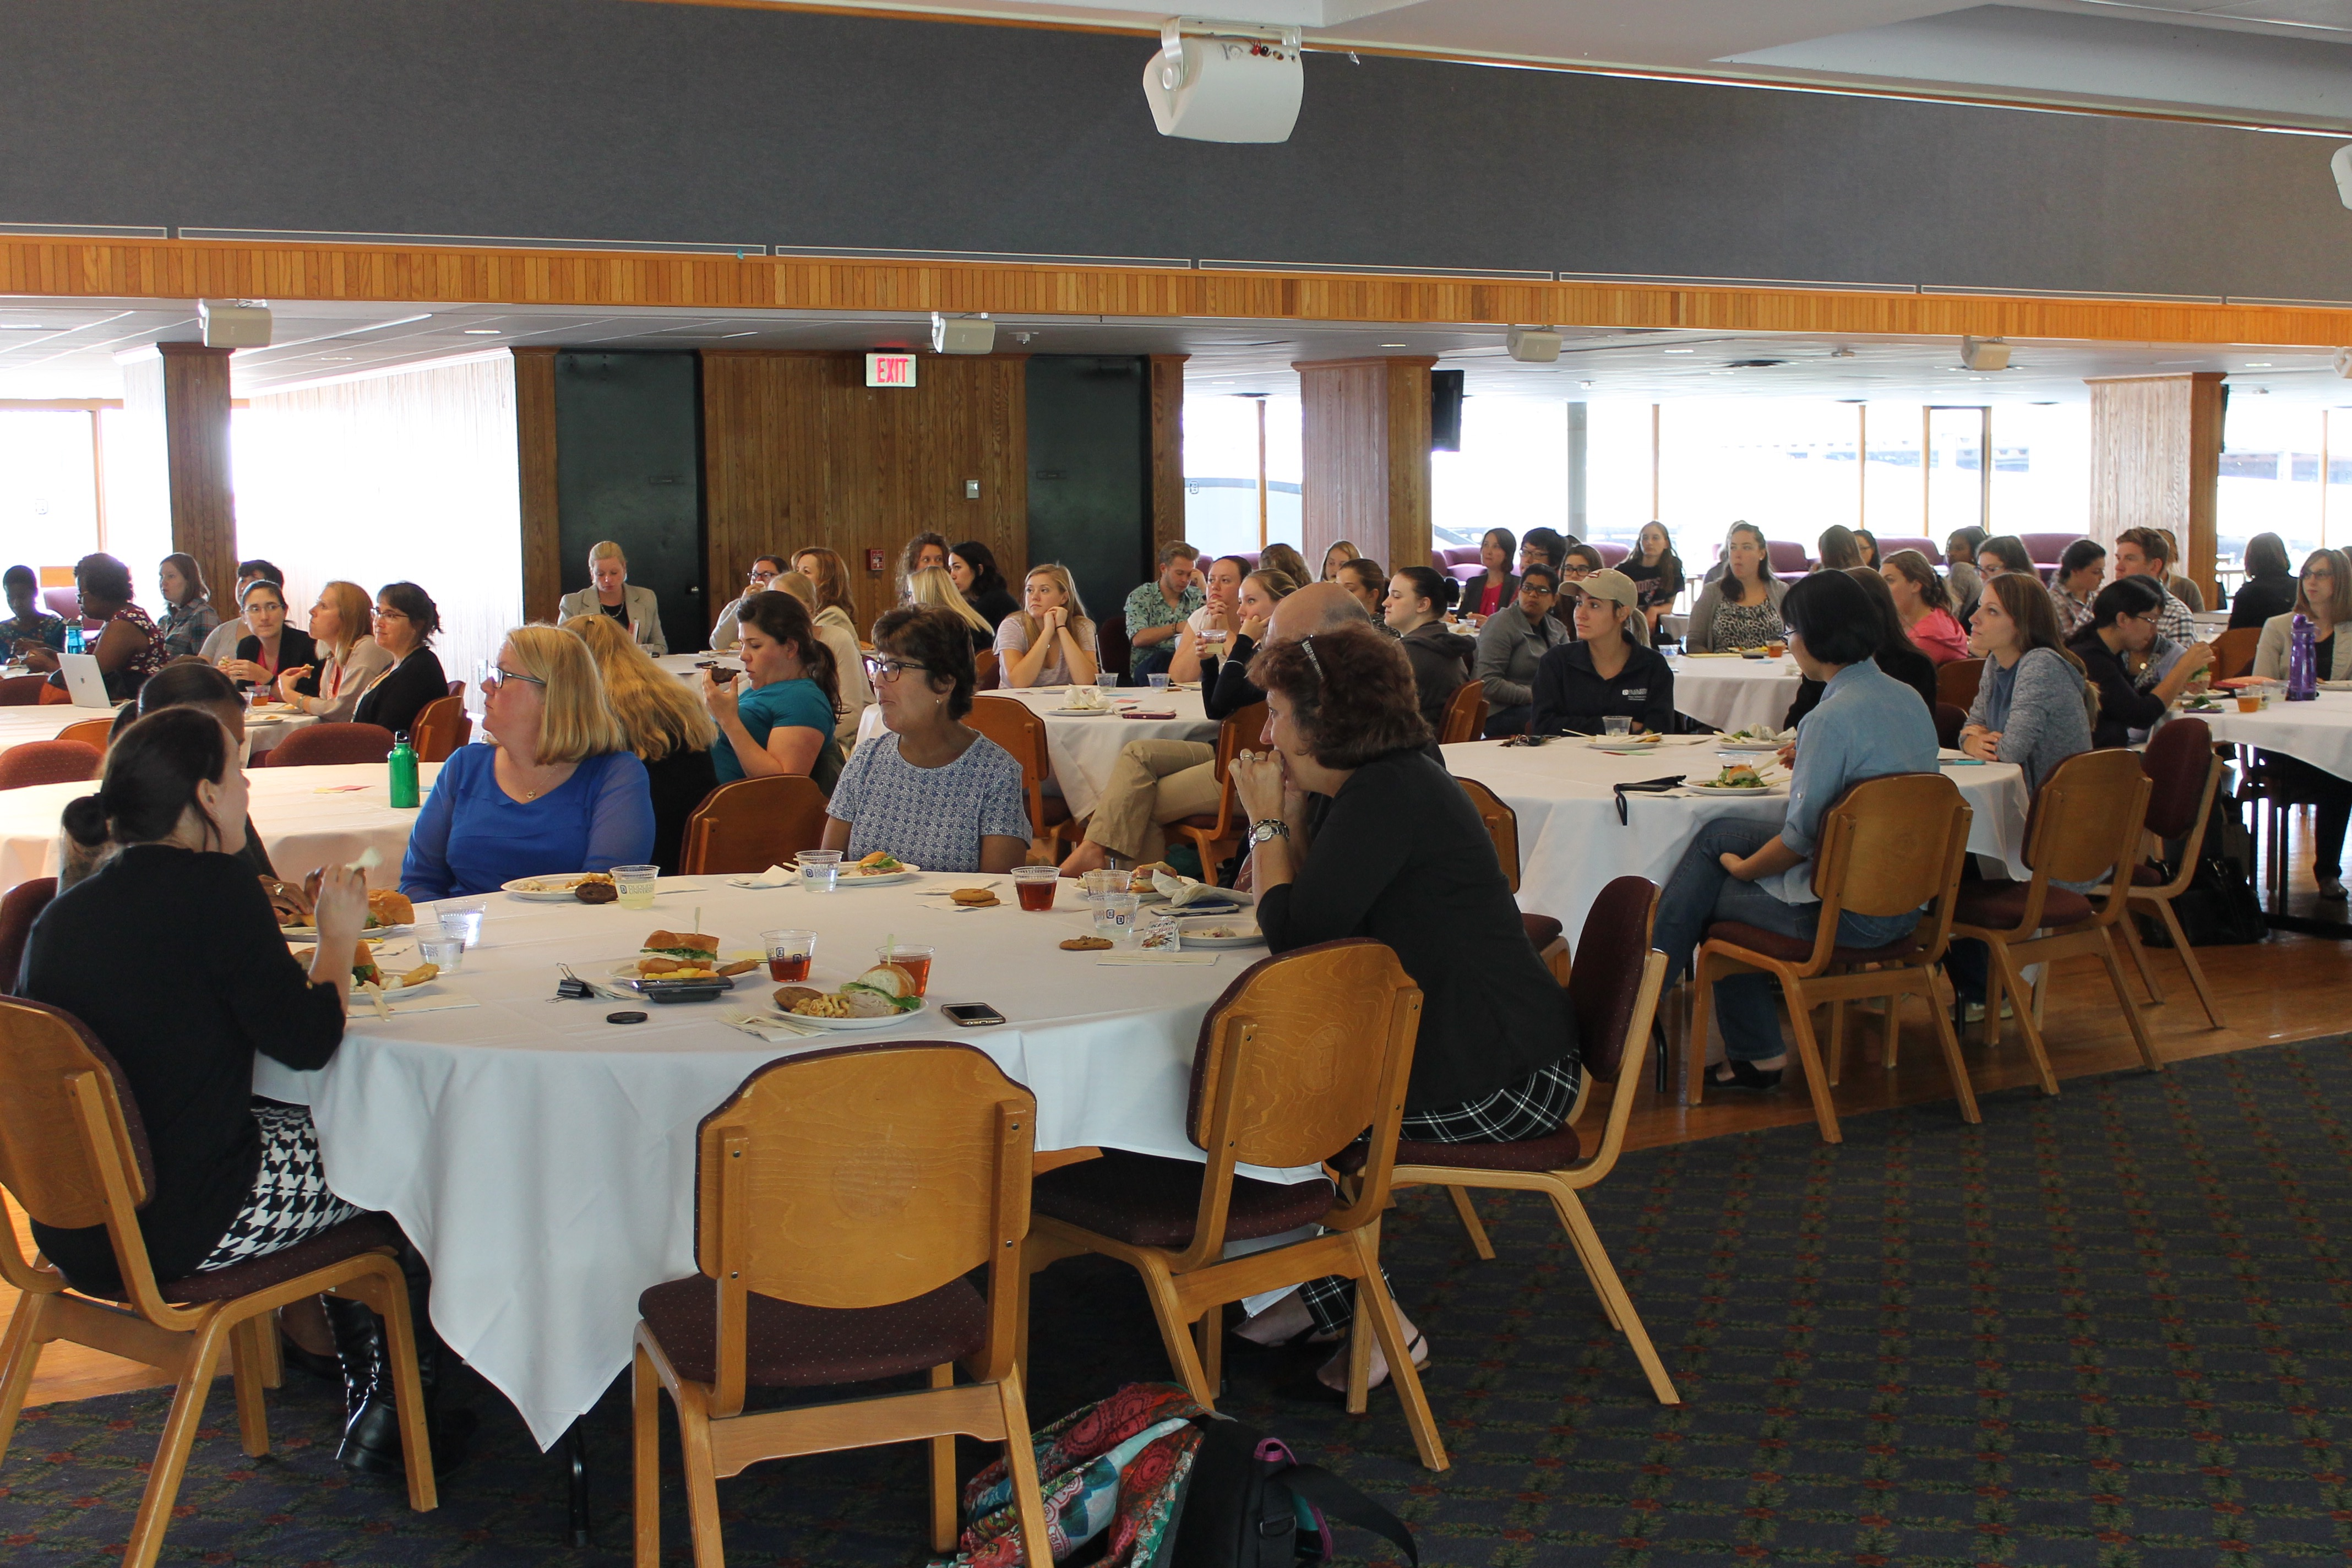 Approximately 75 students and faculty attended Dr. Mary Munson's talk.